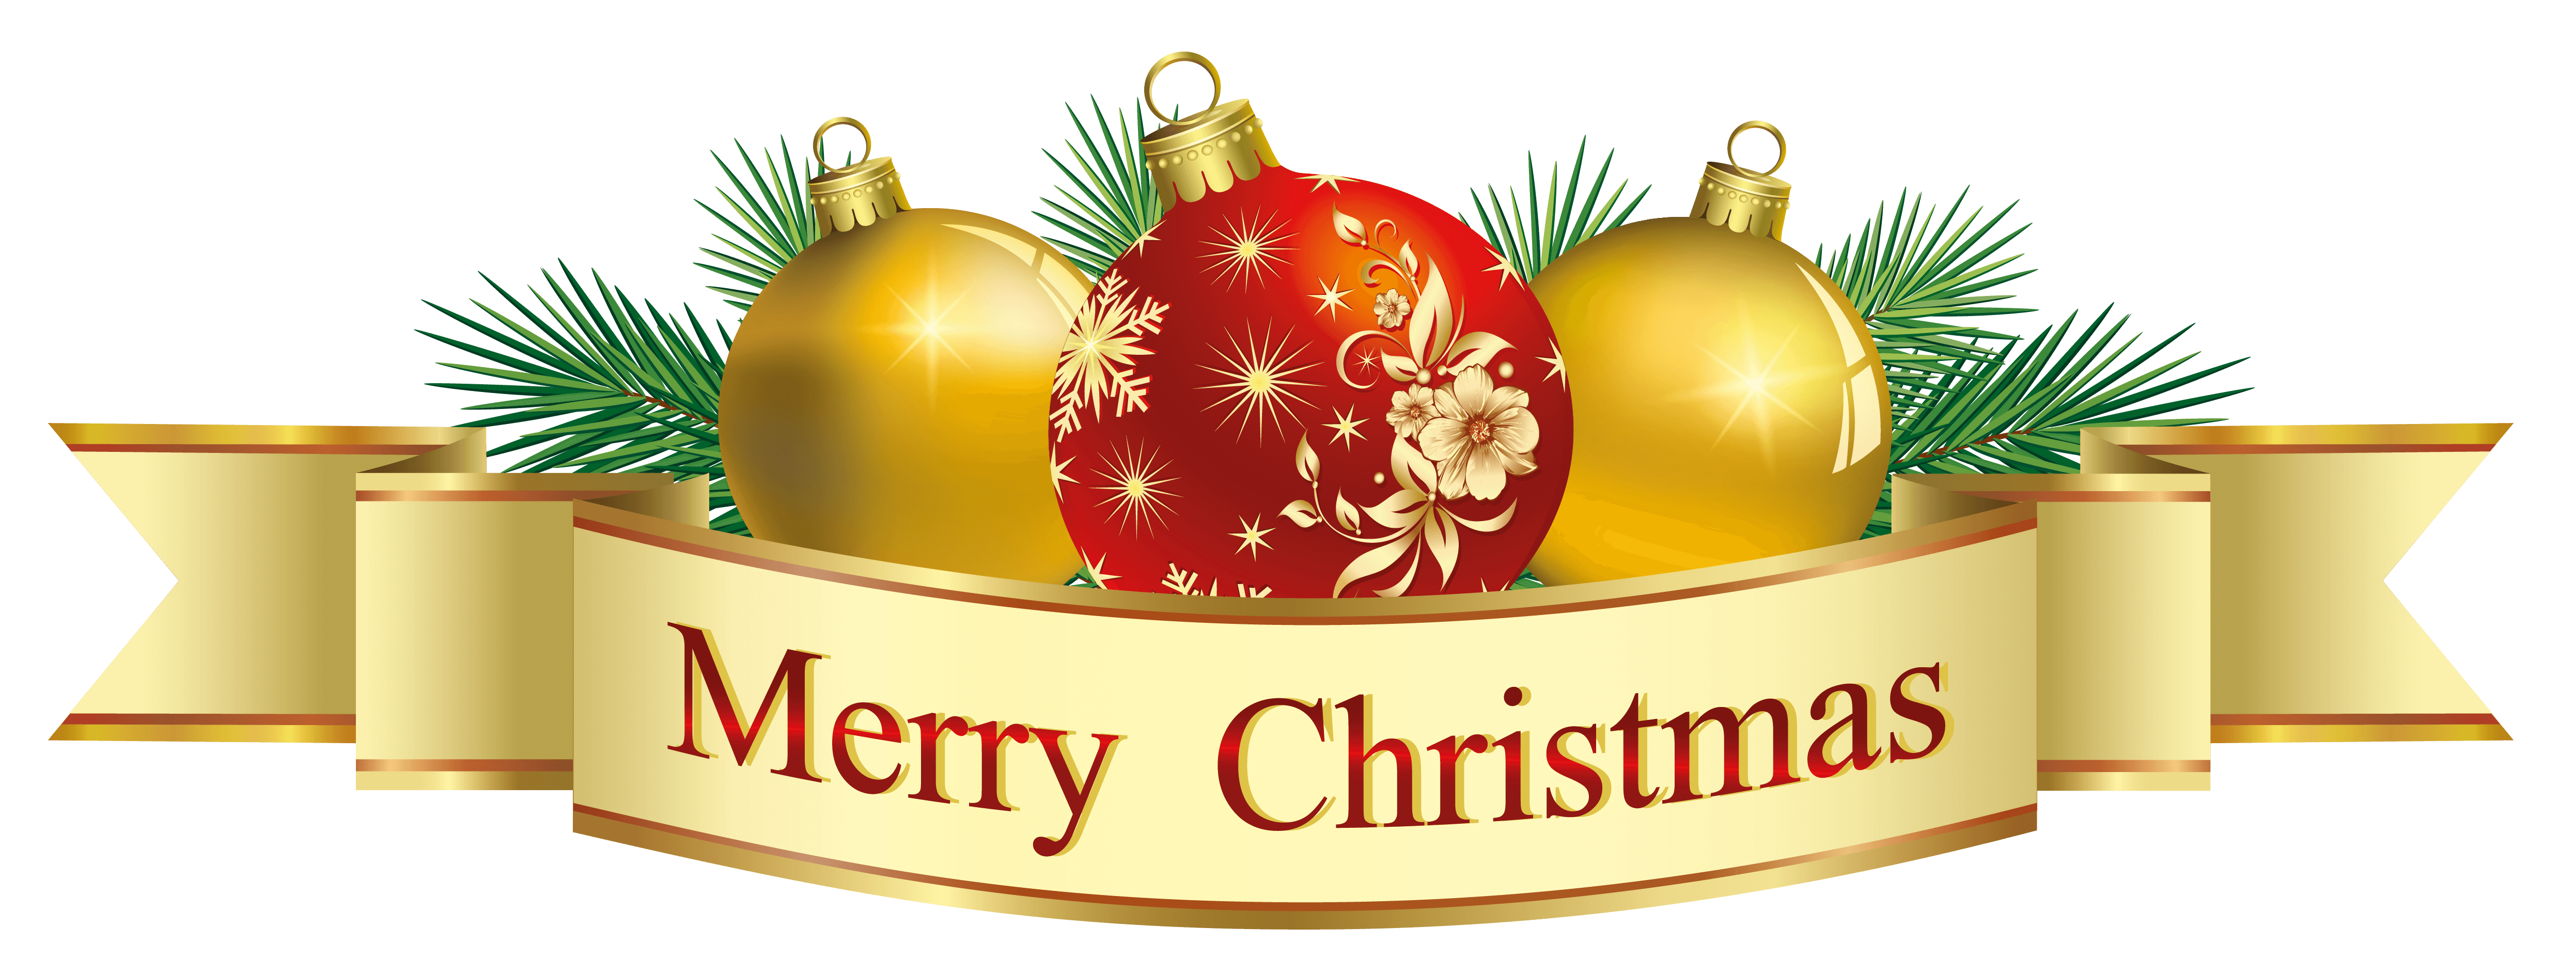 Merry Christmas Clipart & Merry Christmas Clip Art Images.